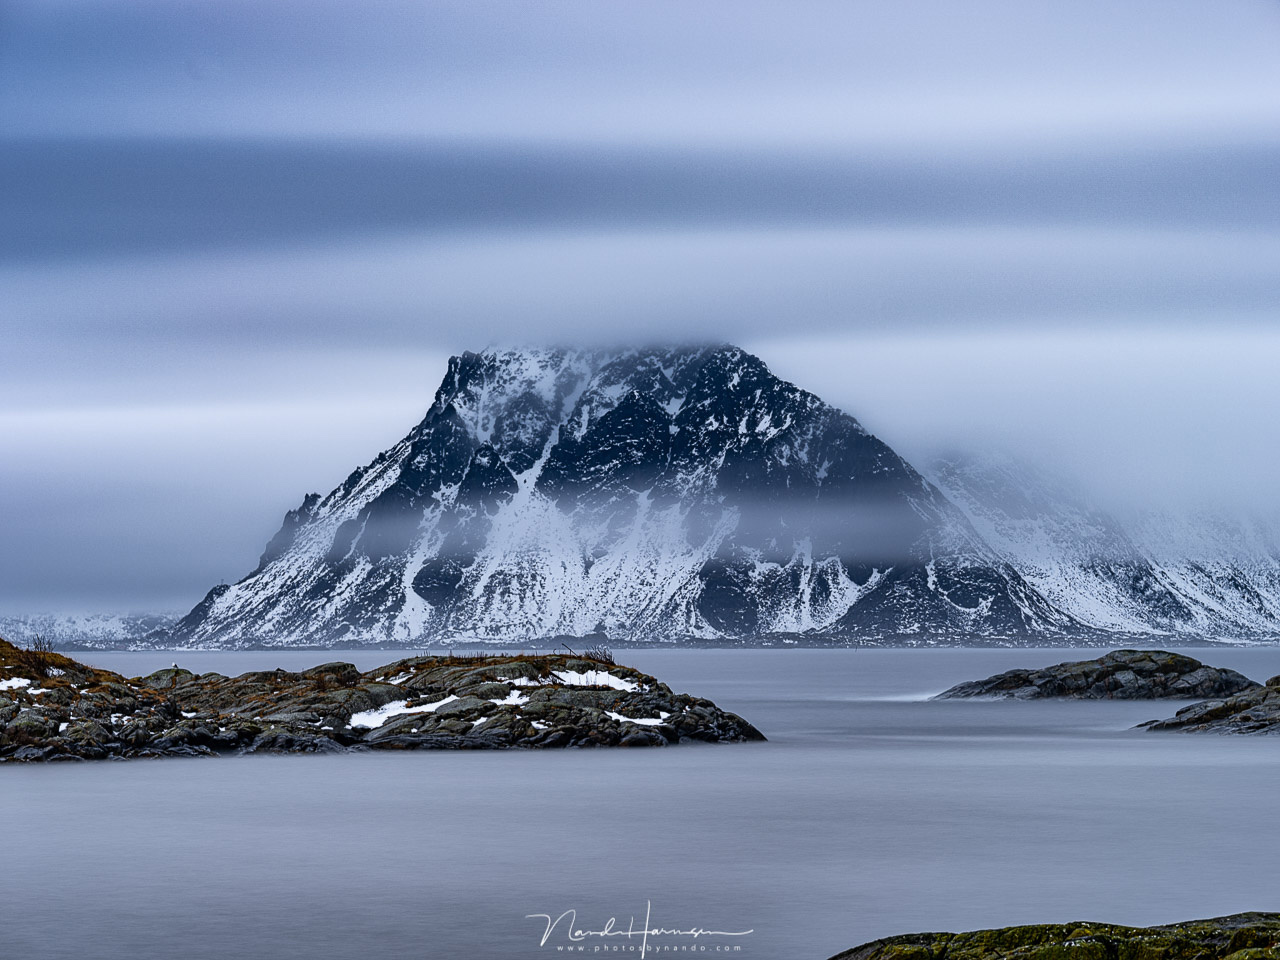 Shooting long exposures can be fun, and can provide a new dimension to your photos. For this you need to use filters and a filter system is a good choice. For Winter at Lofoten I was asked to use the new Haida M10 system with the new Red Diamond filters.